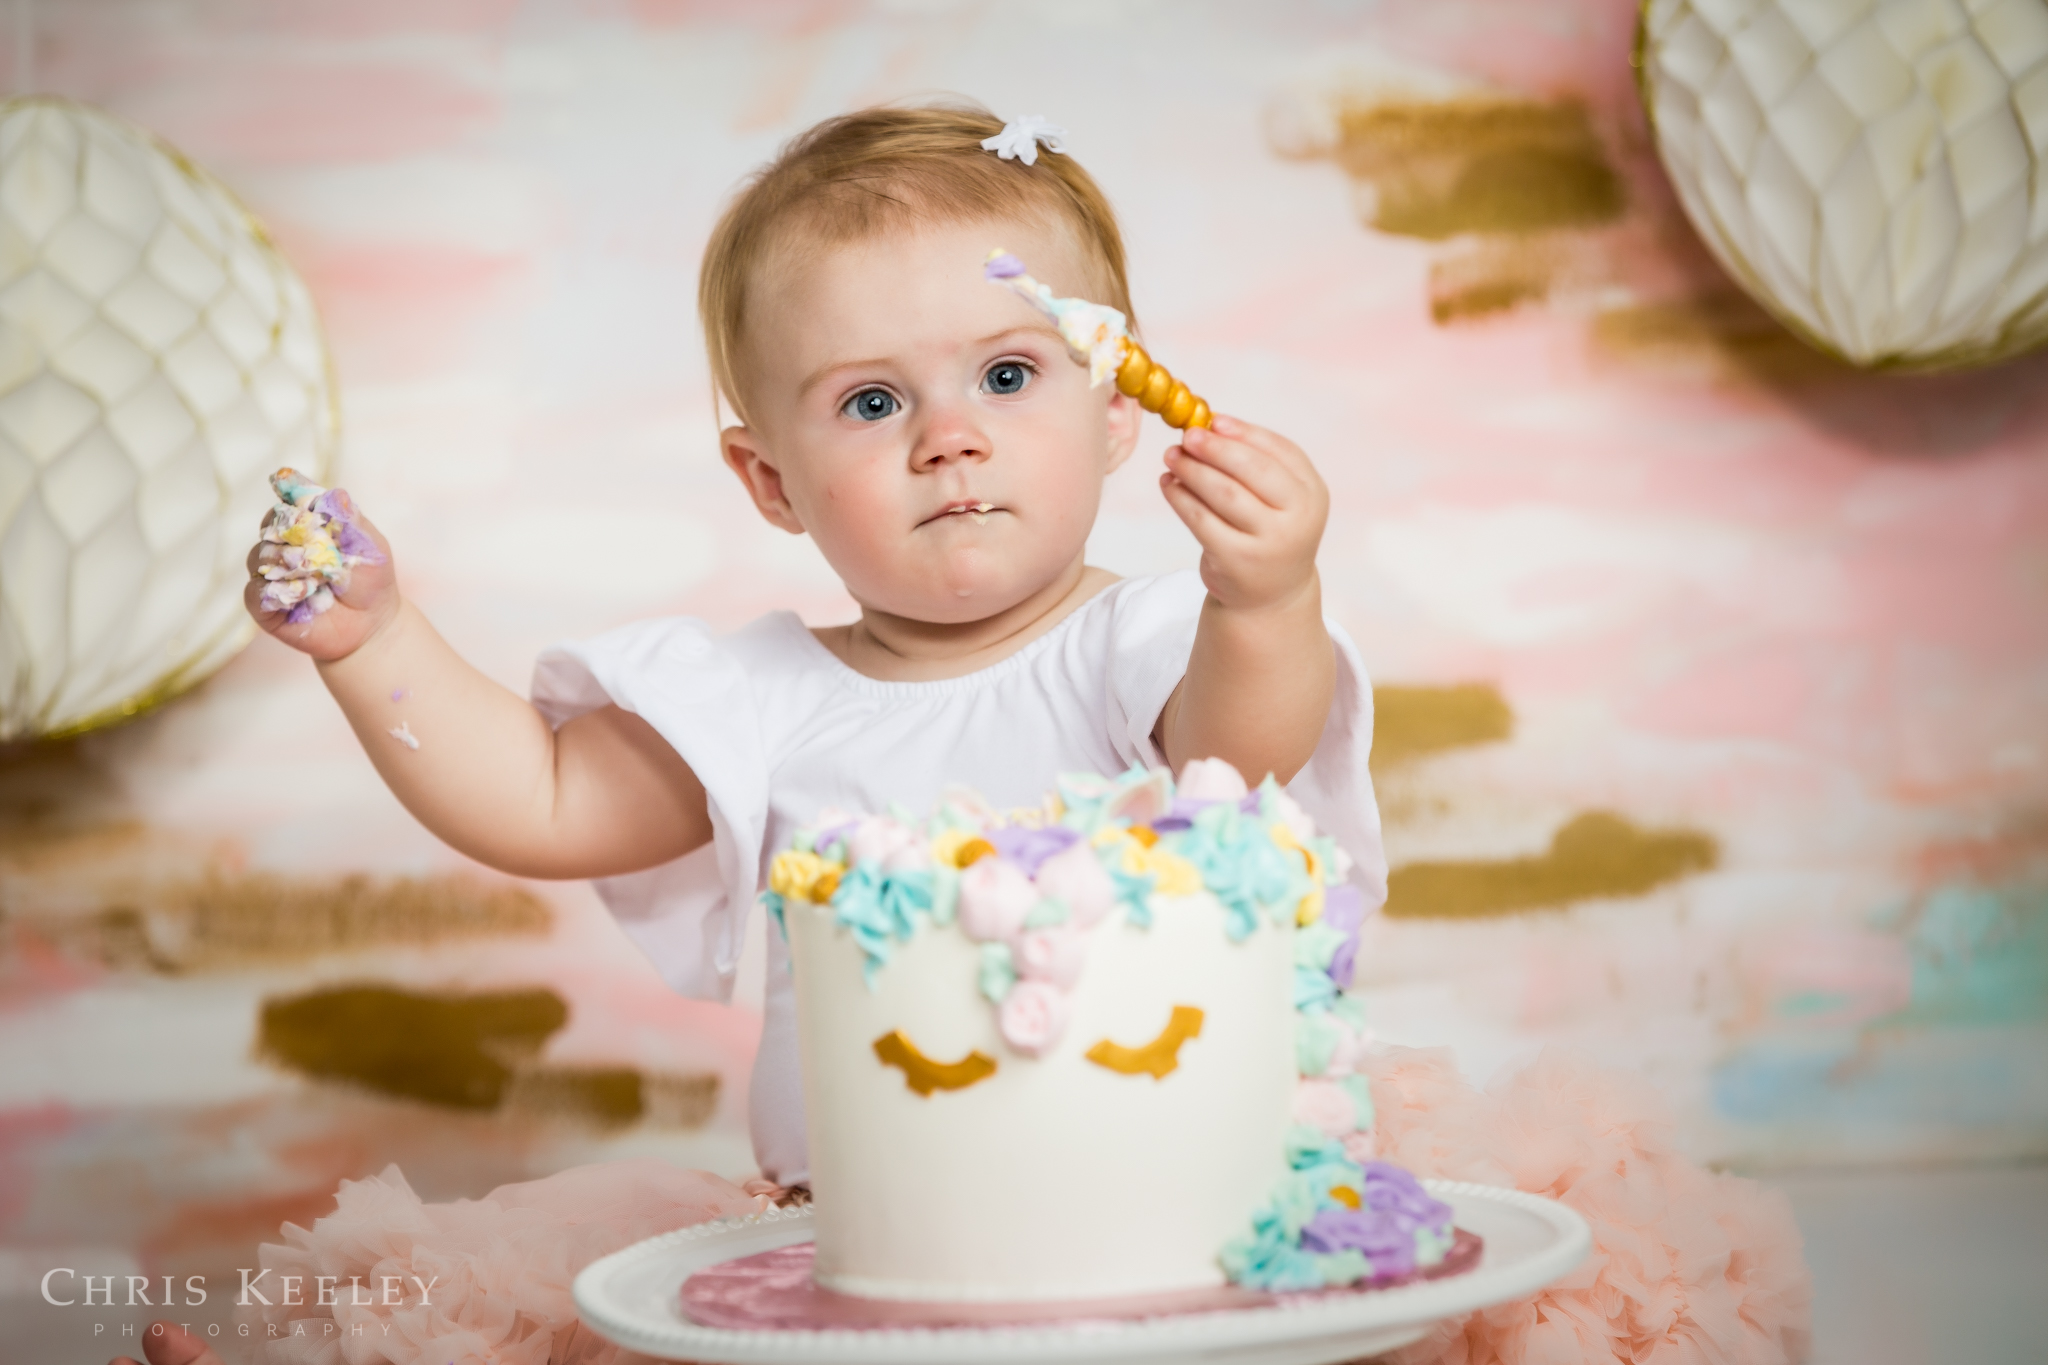 gwendolyn-one-year-cake-smash-dover-new-hampshire-photographer-04.jpg